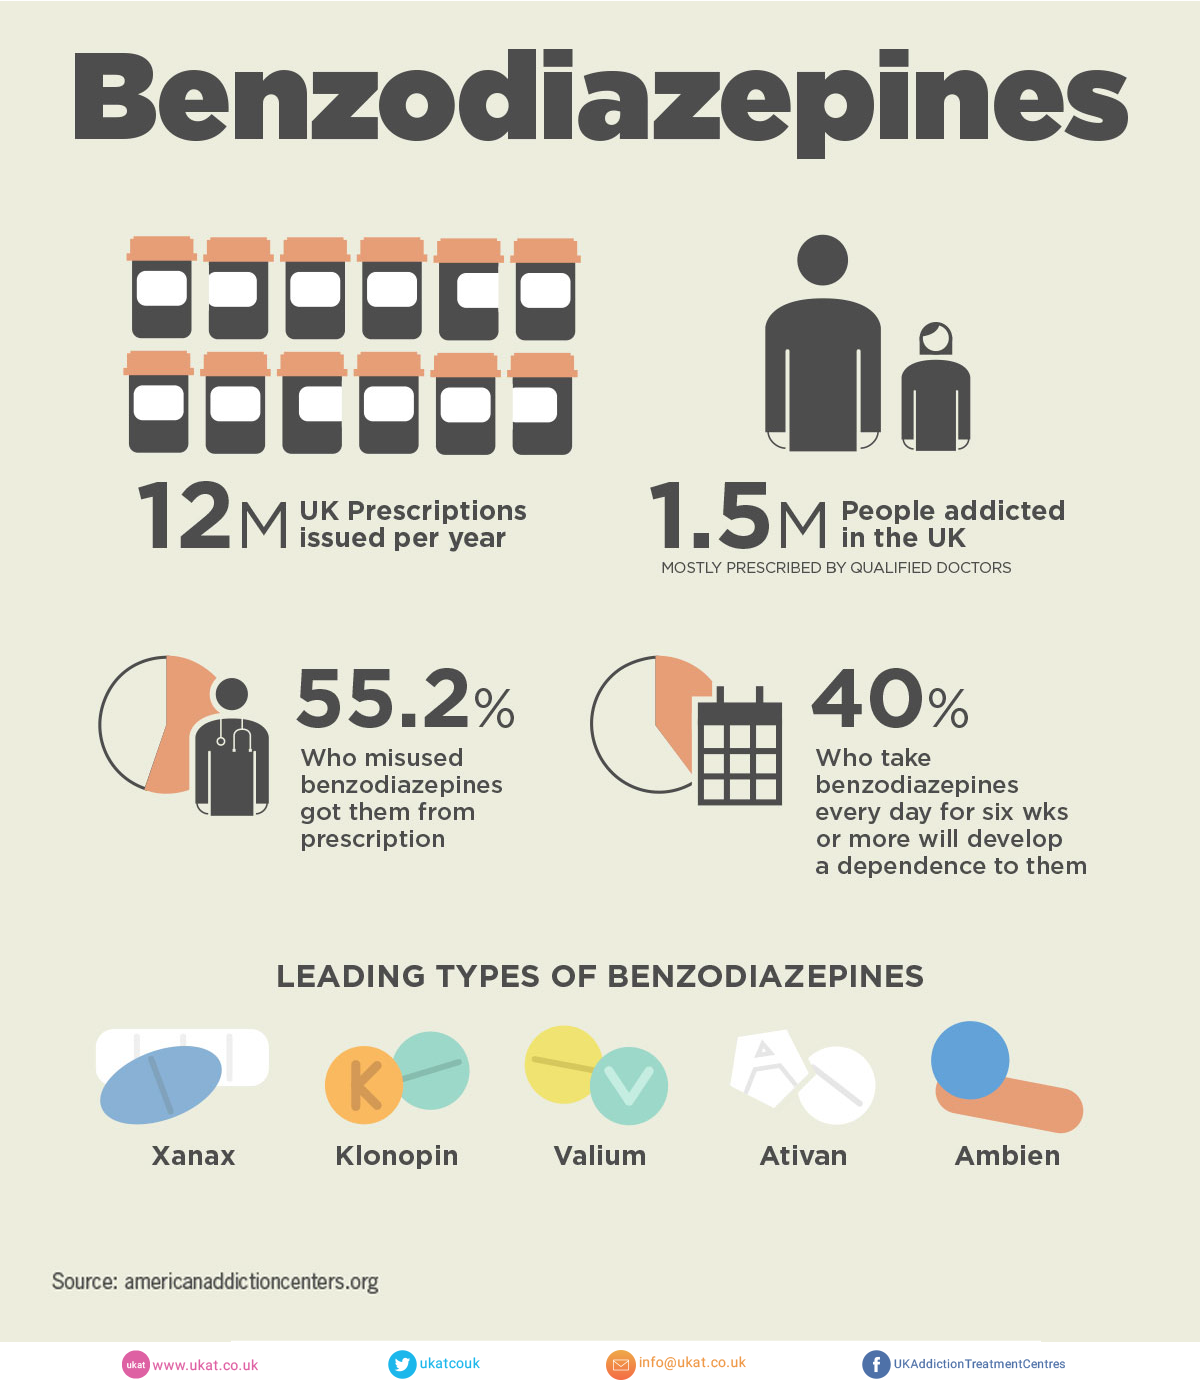 effect of benzodiazepine addiction on genomes The effects of benzodiazepines change based on the dosage, the formulation of the particular benzodiazepine, and the length of time that a person uses the drugs addiction is more likely to develop with higher doses, faster-acting formulations and longer treatment durations.